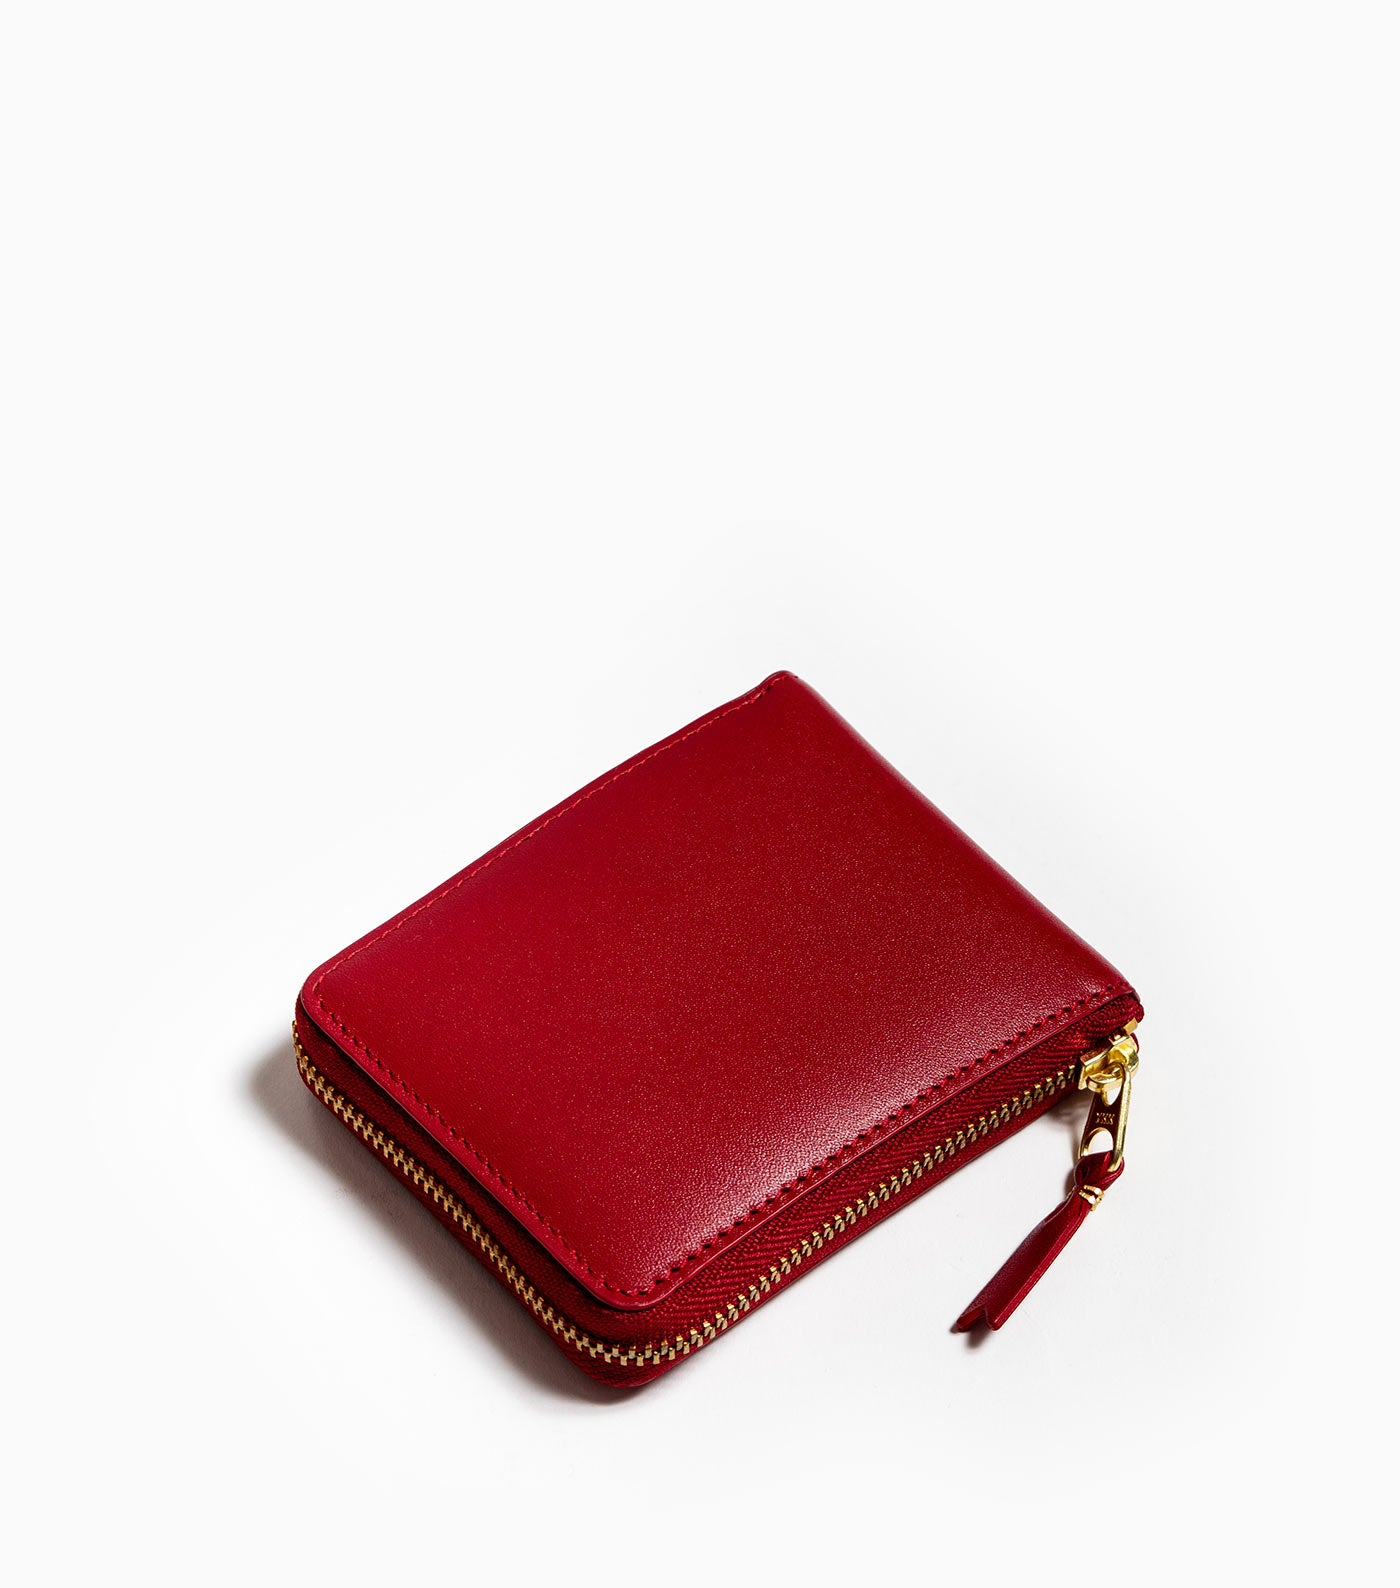 Comme des Garçons Wallet Classic Leather SA7100 - Red Wallet - CARTOCON